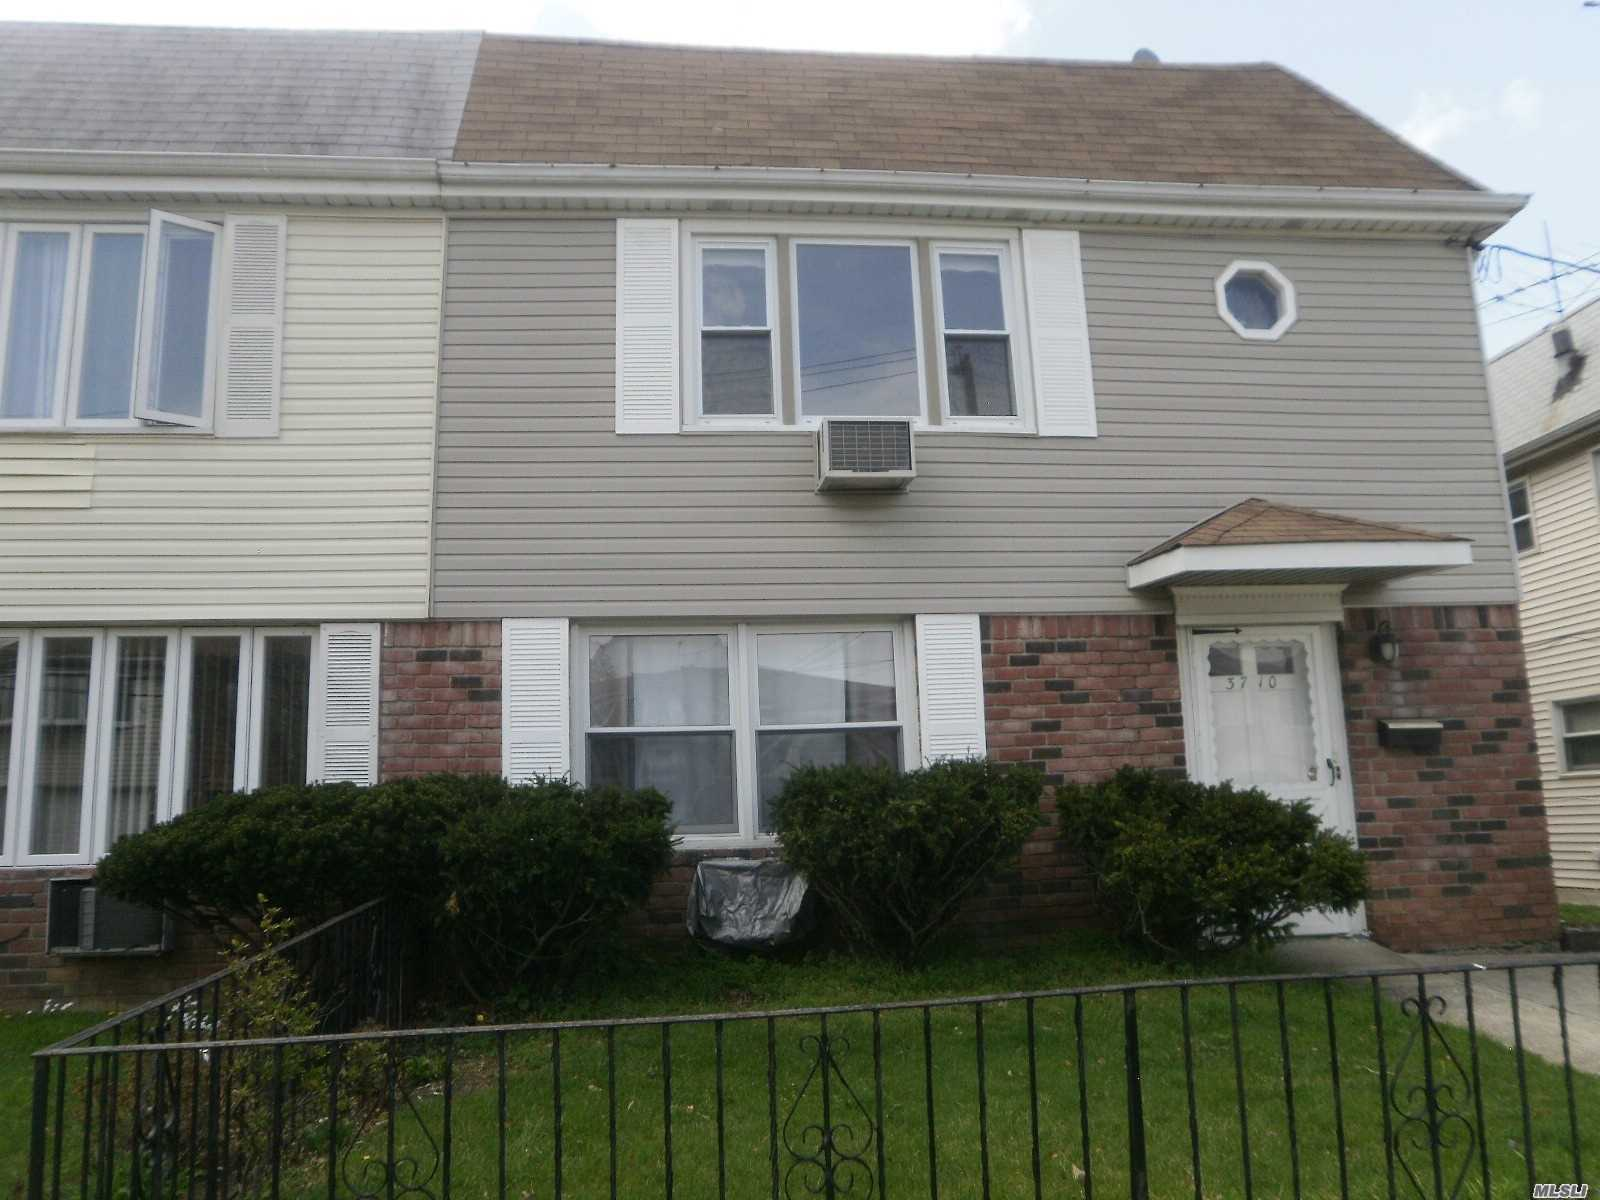 Semi Det.house in quiet residential area of Heart of Little Neck.All remodel with renovation on 1st. floor a few years ago Bright Airy well maintain and new bath room on 2nd floor, a few block to LIRR, Best school distric Enjoyed to Living with excellent income.